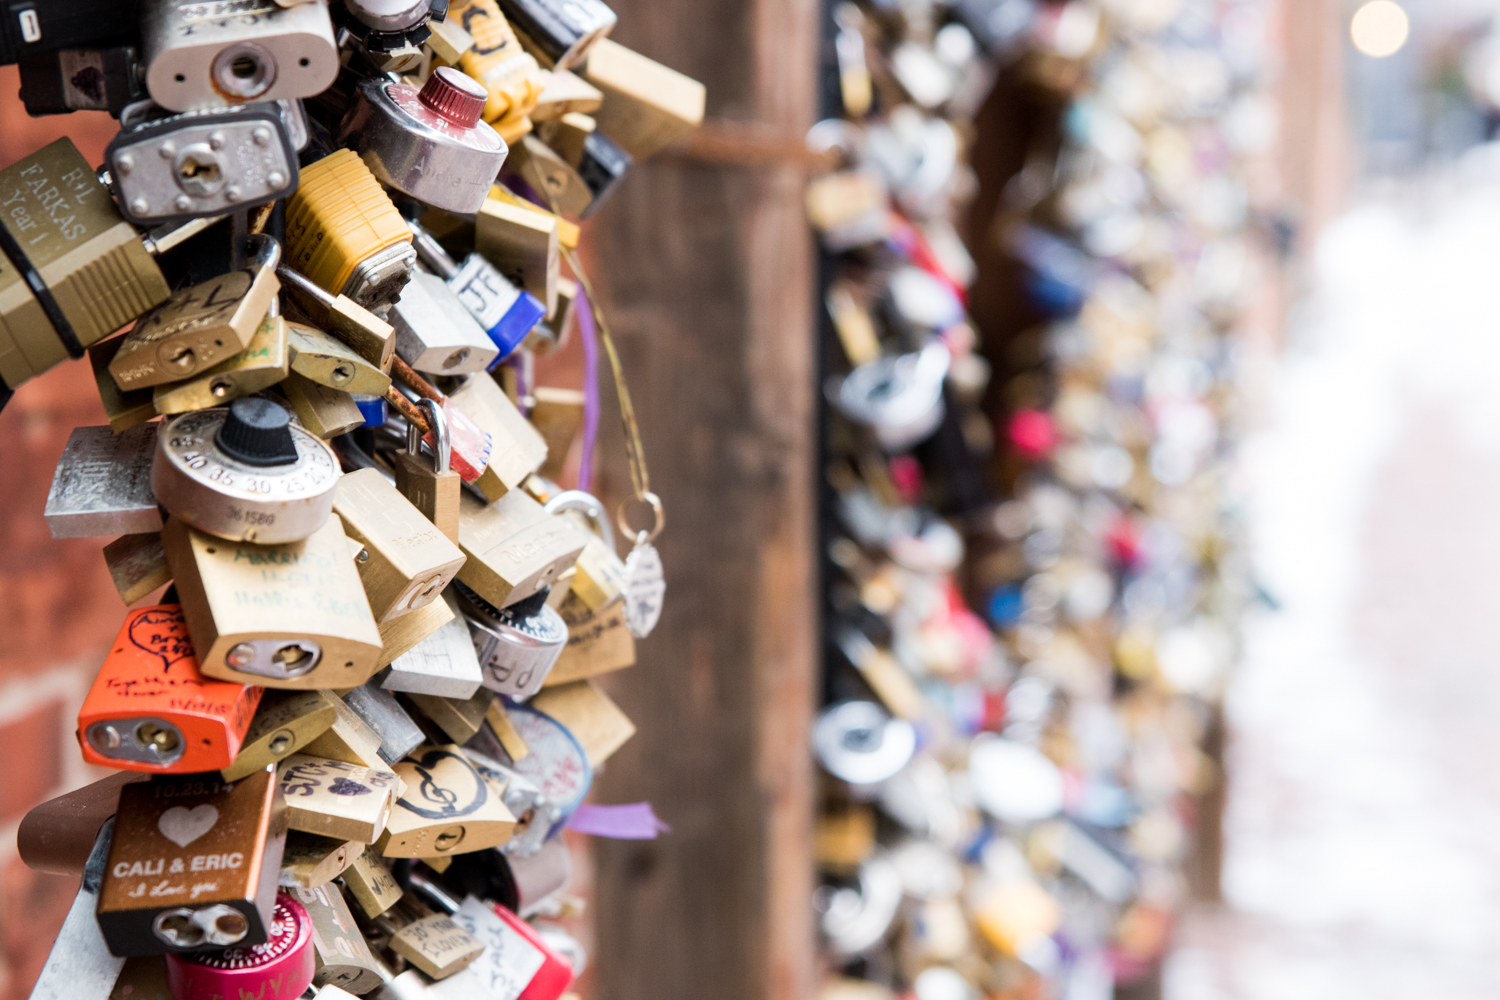 Padlocks in the Distillery District of Toronto. January 14th.